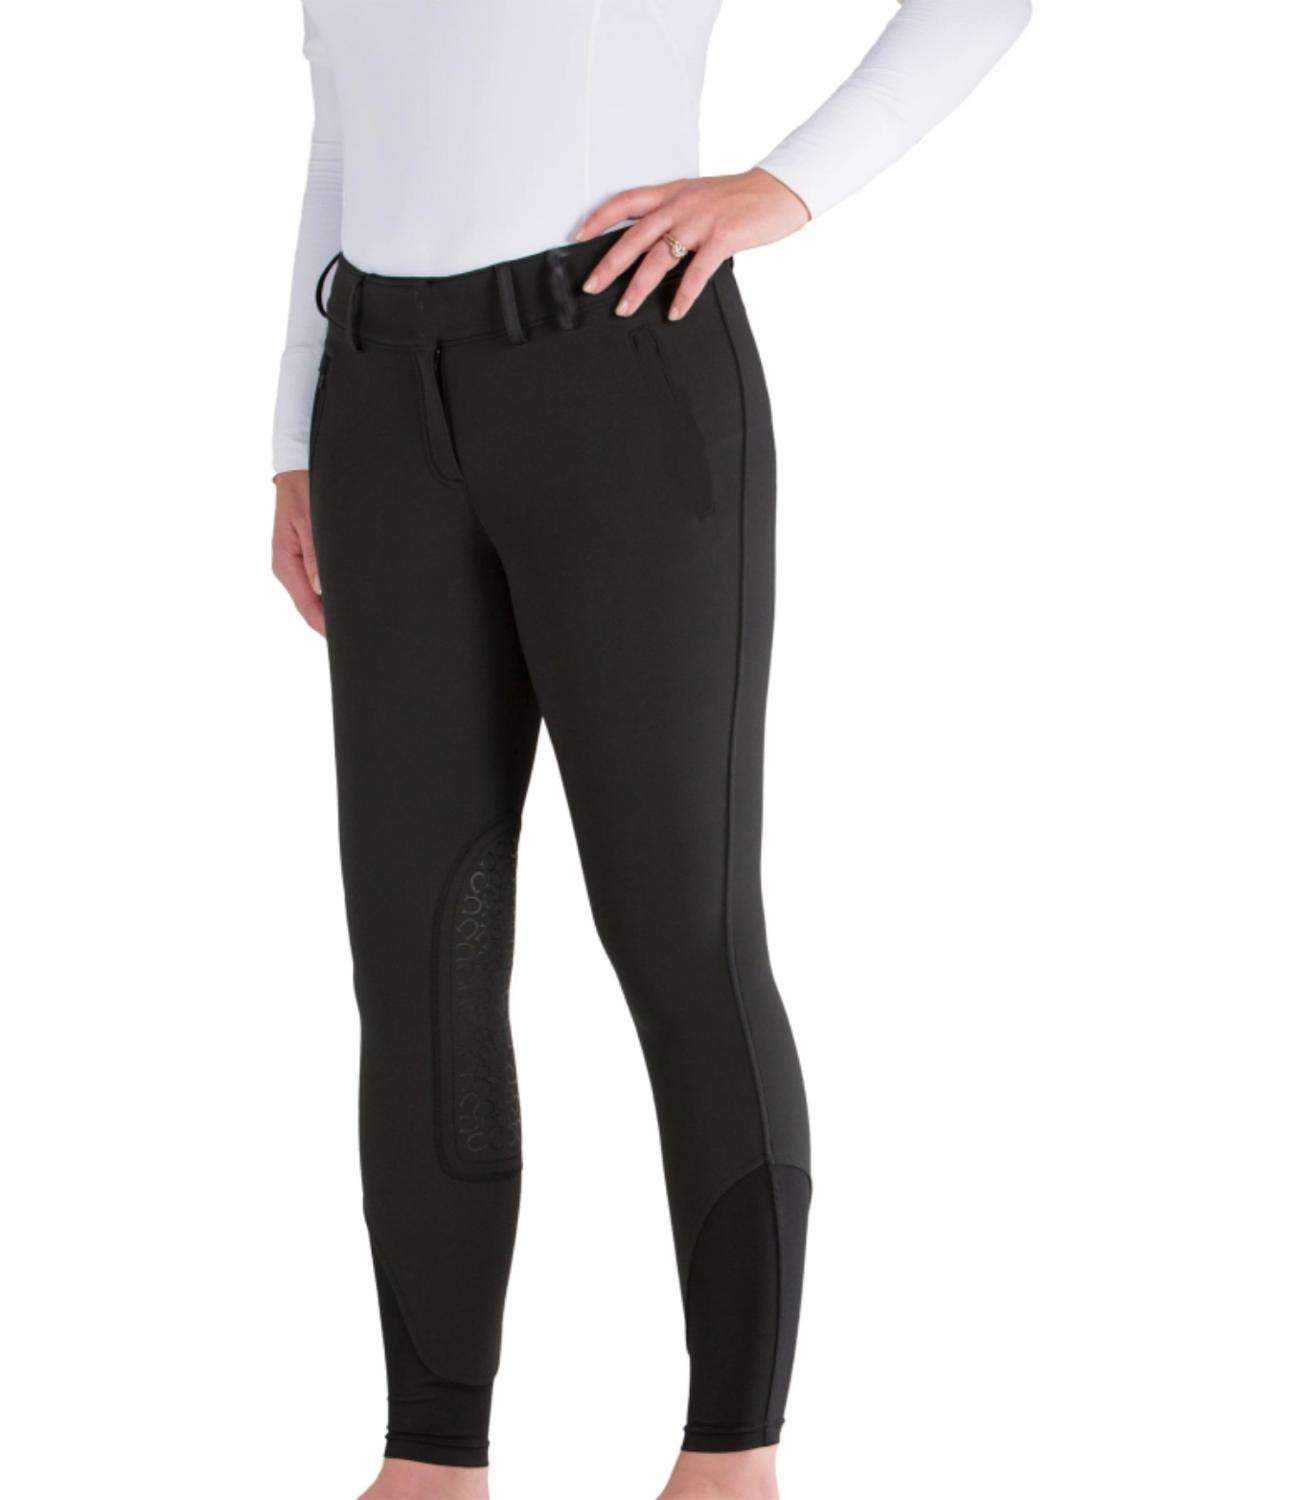 Noble Women's Horse Riding Pants Breeches Equestrian Chaps Pants Silicone Full Seat Women Horse Riding Tight Leggings USA Size 4